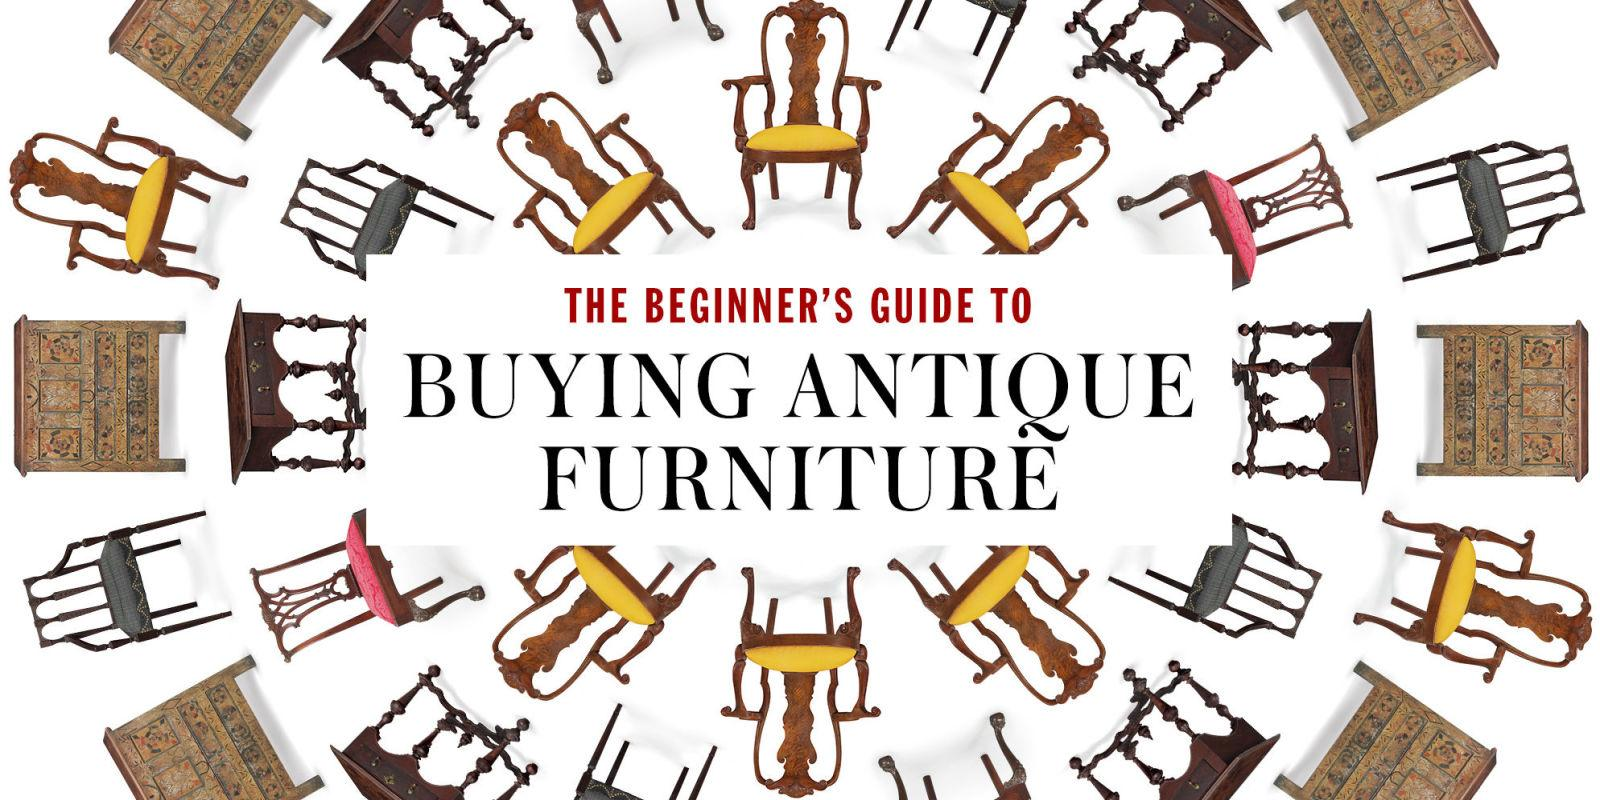 The Beginner's Guide to Buying Antique Furniture